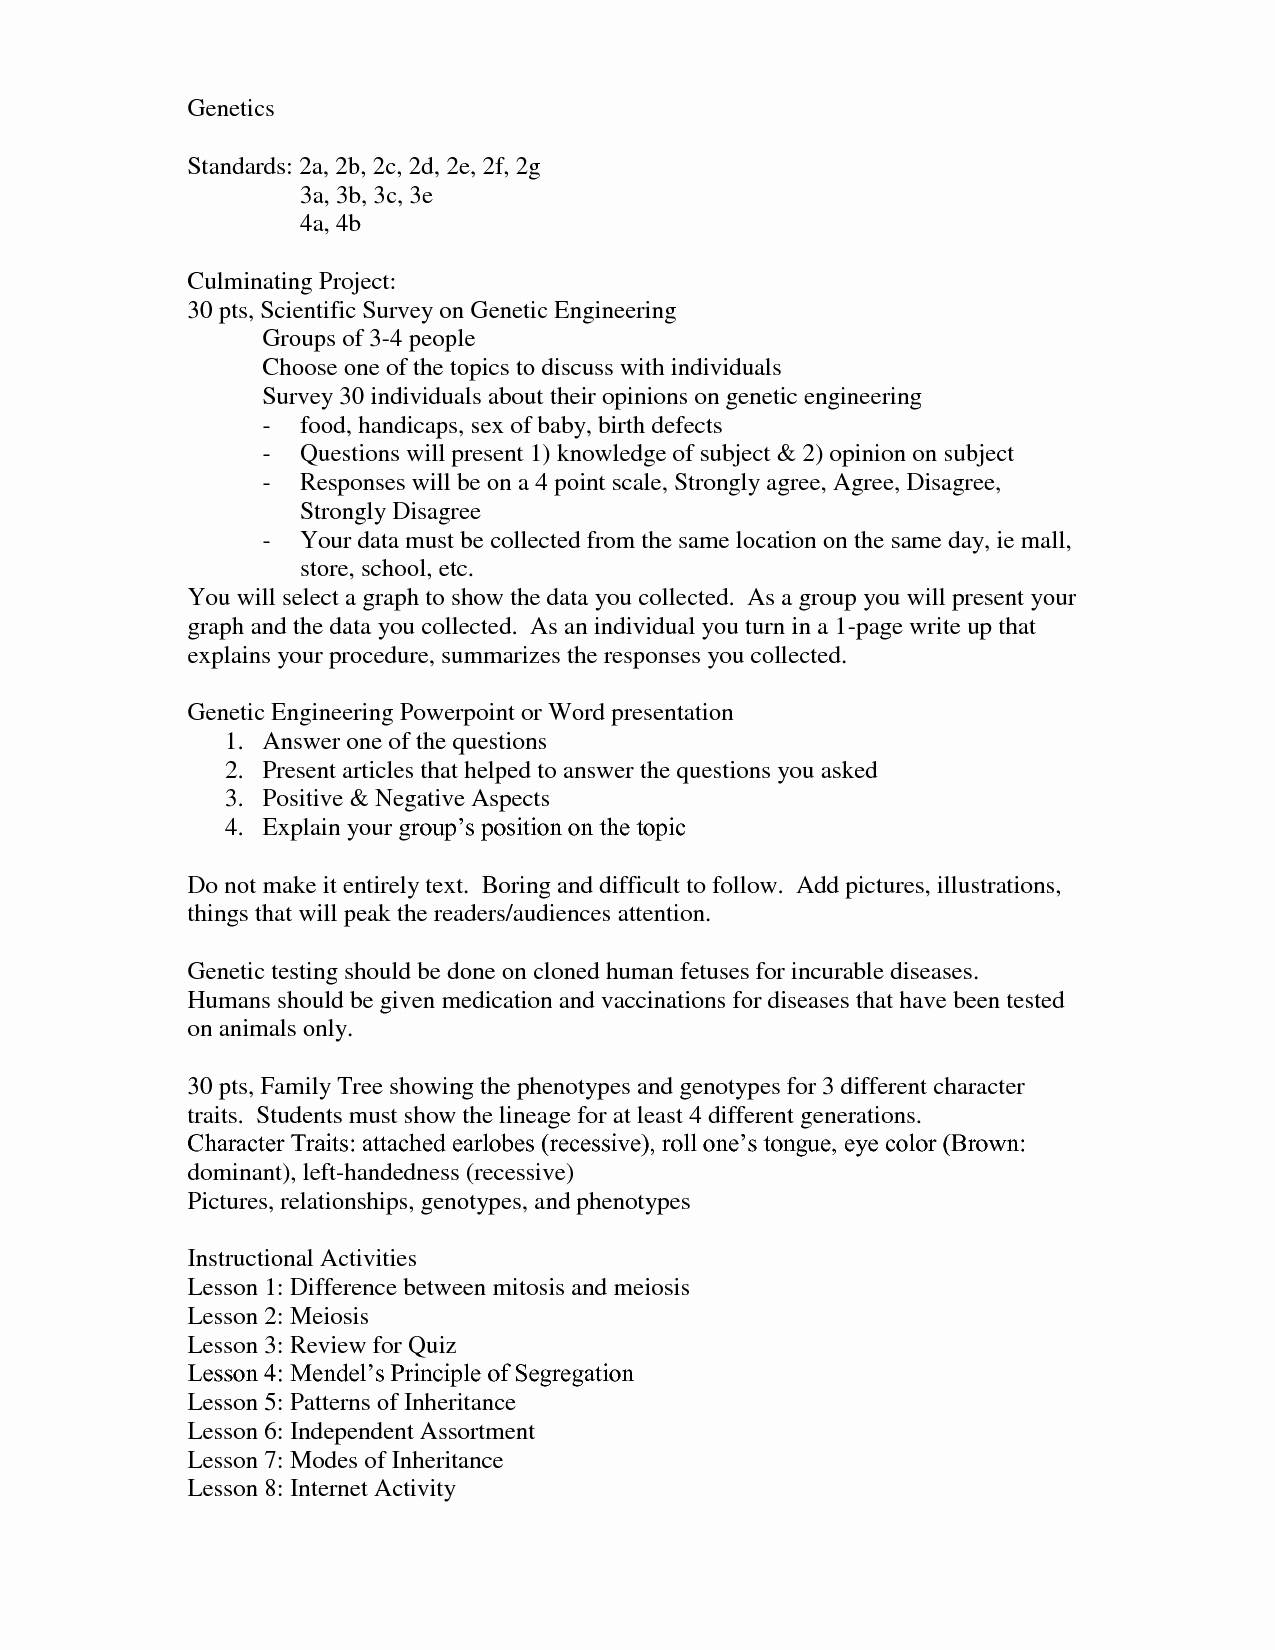 Biological Molecules Worksheet Answers Luxury 14 Best Of Biological Molecules Worksheet Answers